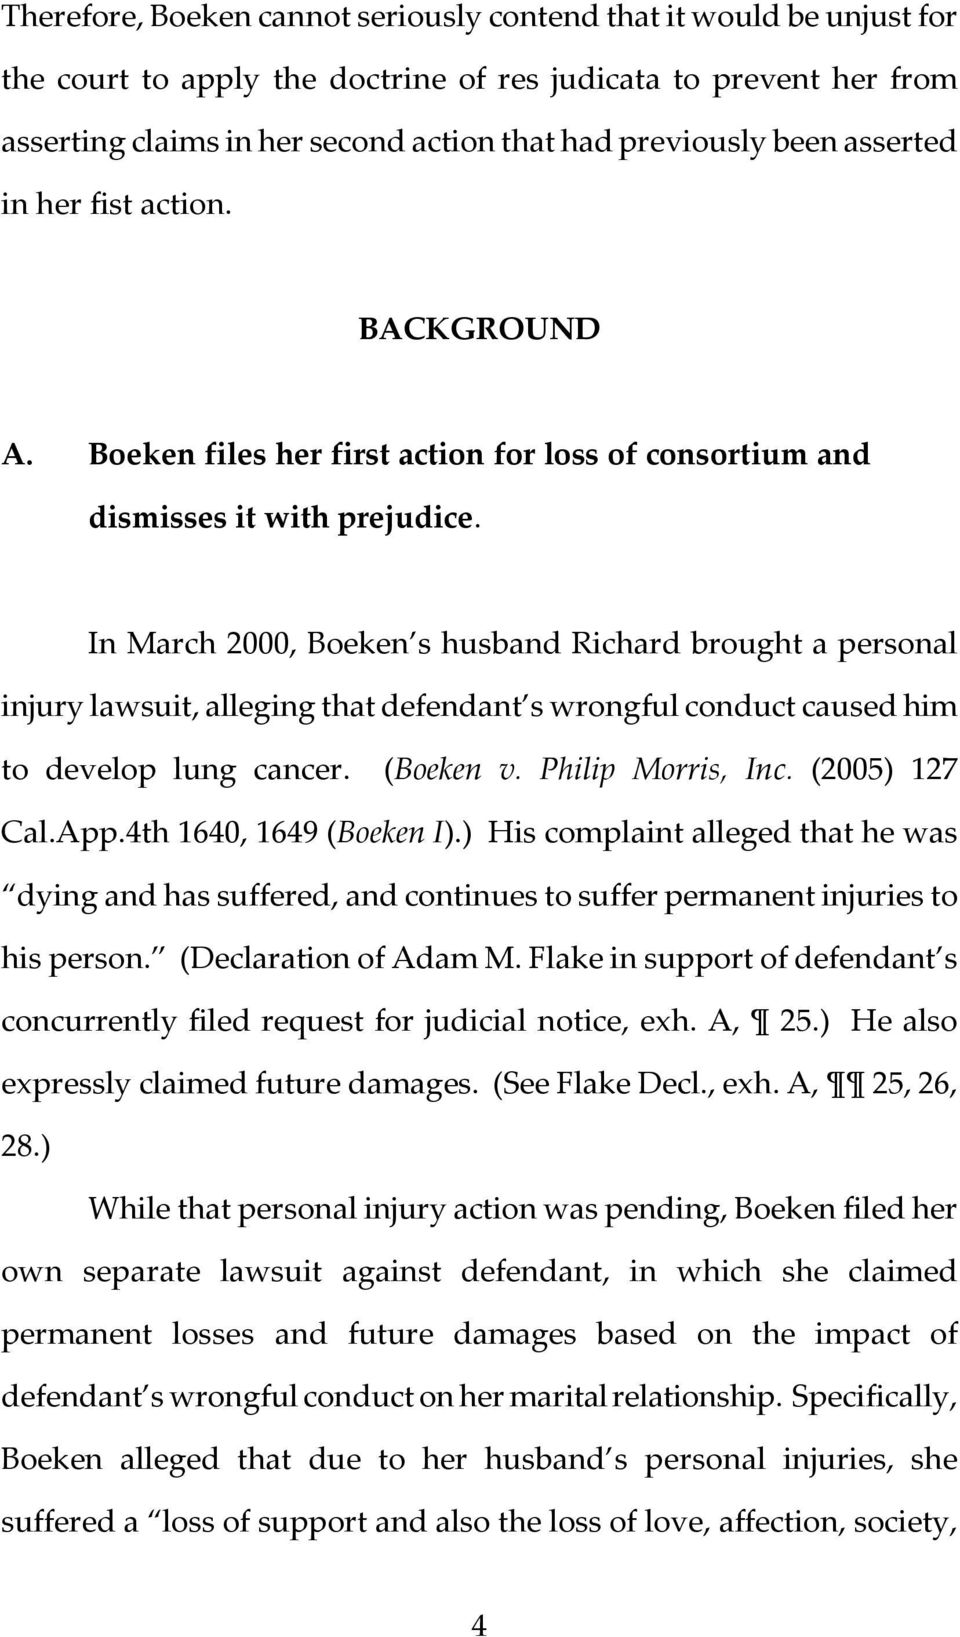 In March 2000, Boeken s husband Richard brought a personal injury lawsuit, alleging that defendant s wrongful conduct caused him to develop lung cancer. (Boeken v. Philip Morris, Inc. (2005) 127 Cal.